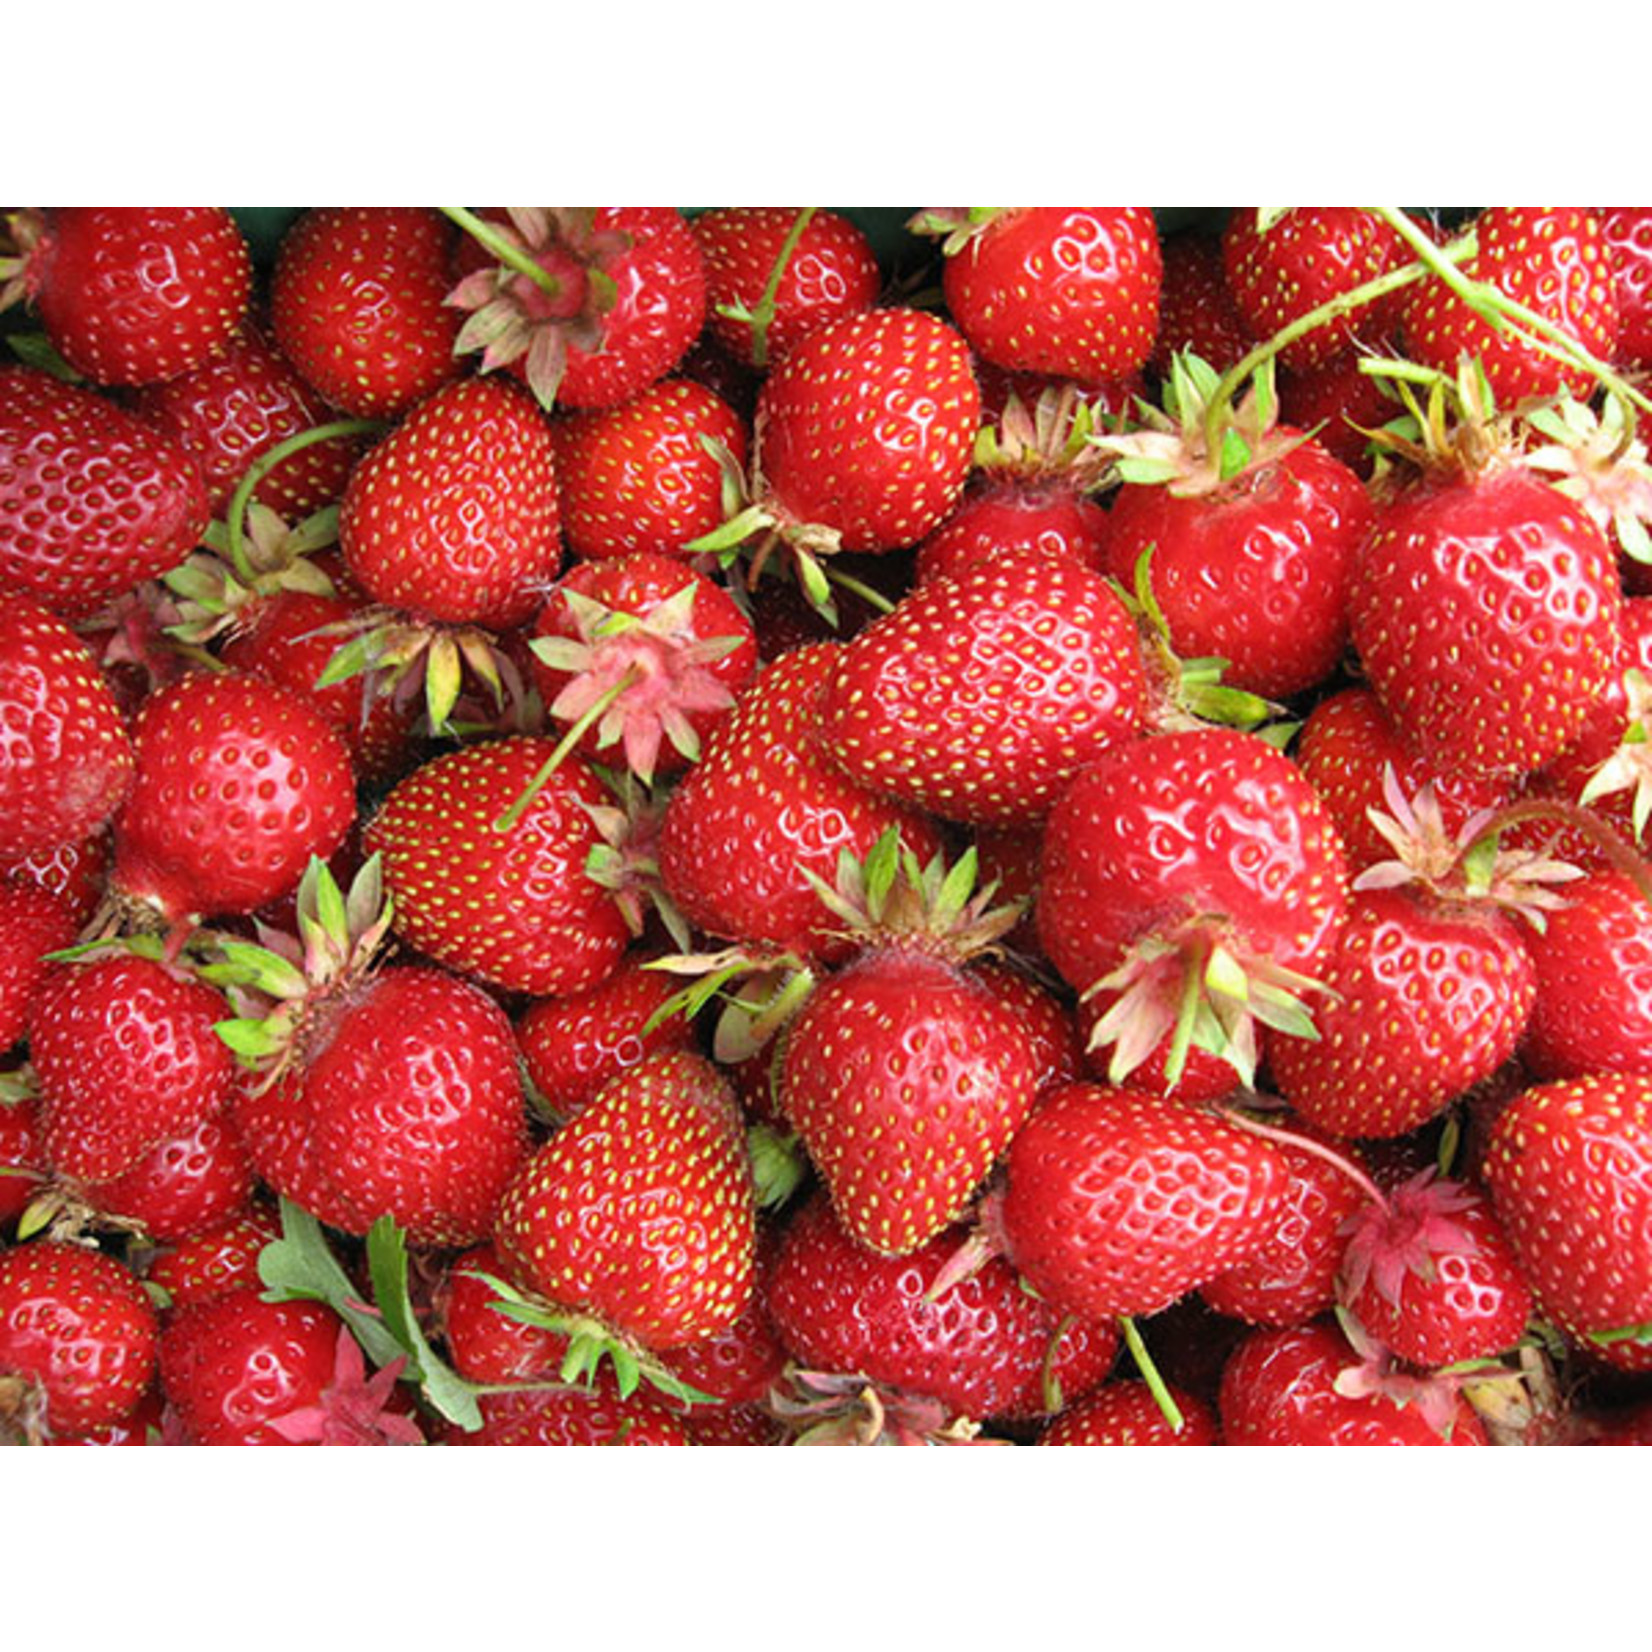 Strawberries (root pkg) - Everbearing Day-Neutral (10 roots)